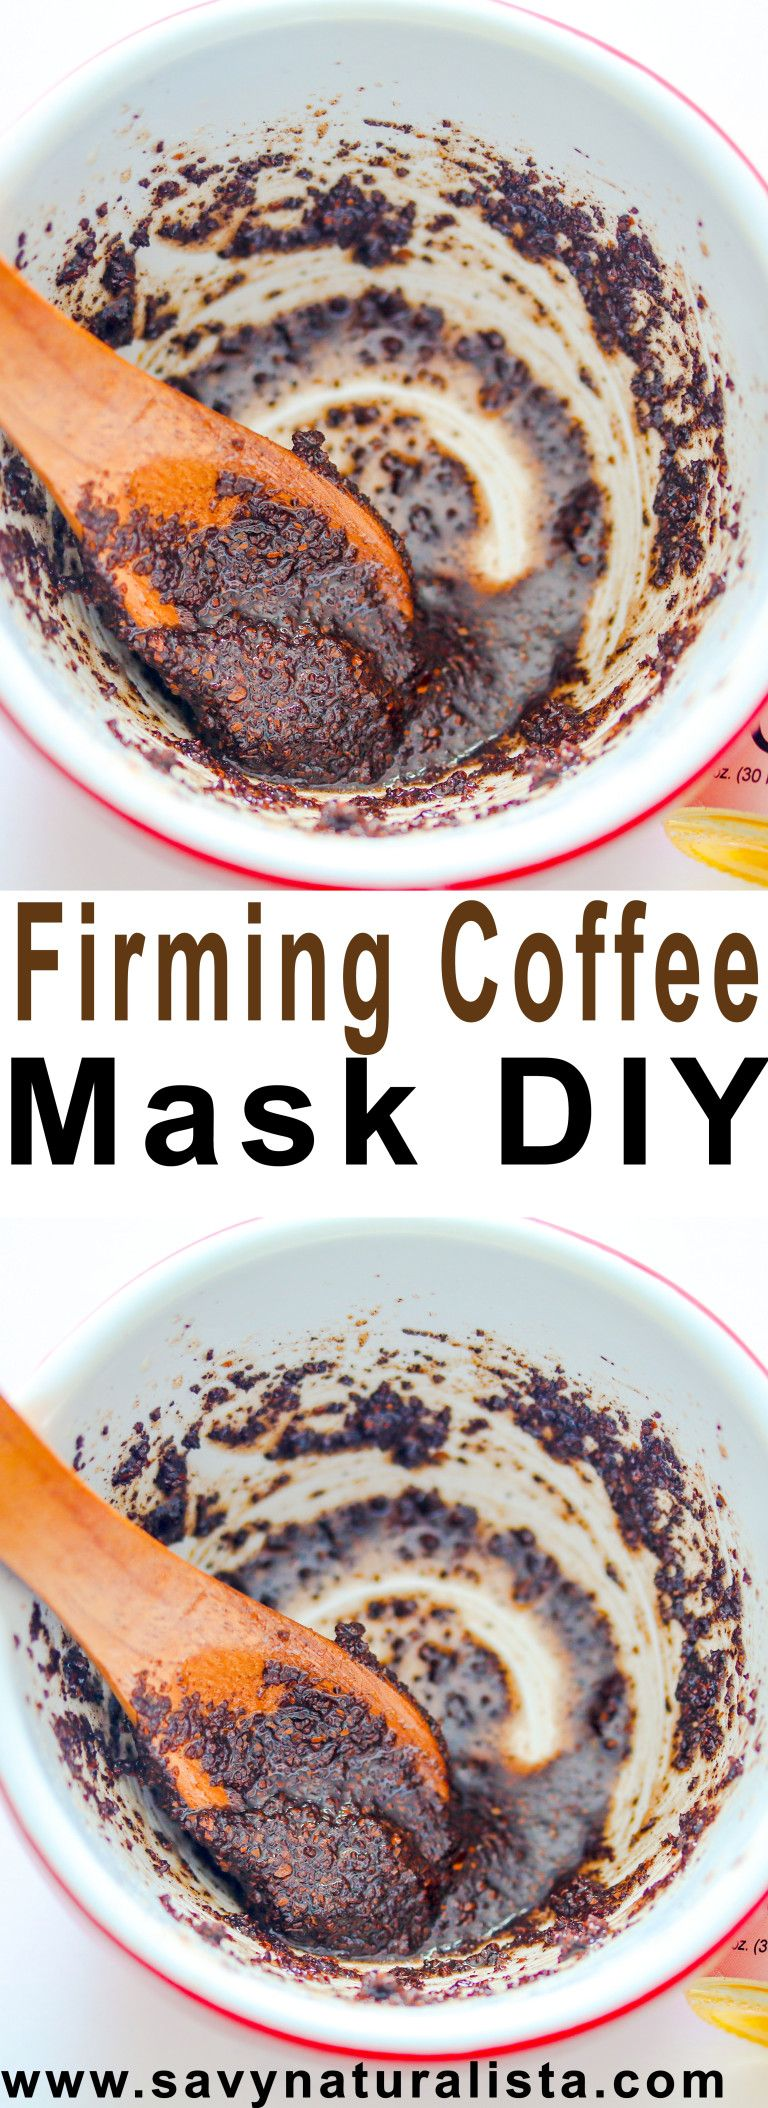 Coffee Grounds are said to tighten the skin and keep it firm! While maintaining a natural glow! Make this easy DIY to tighten the skin!